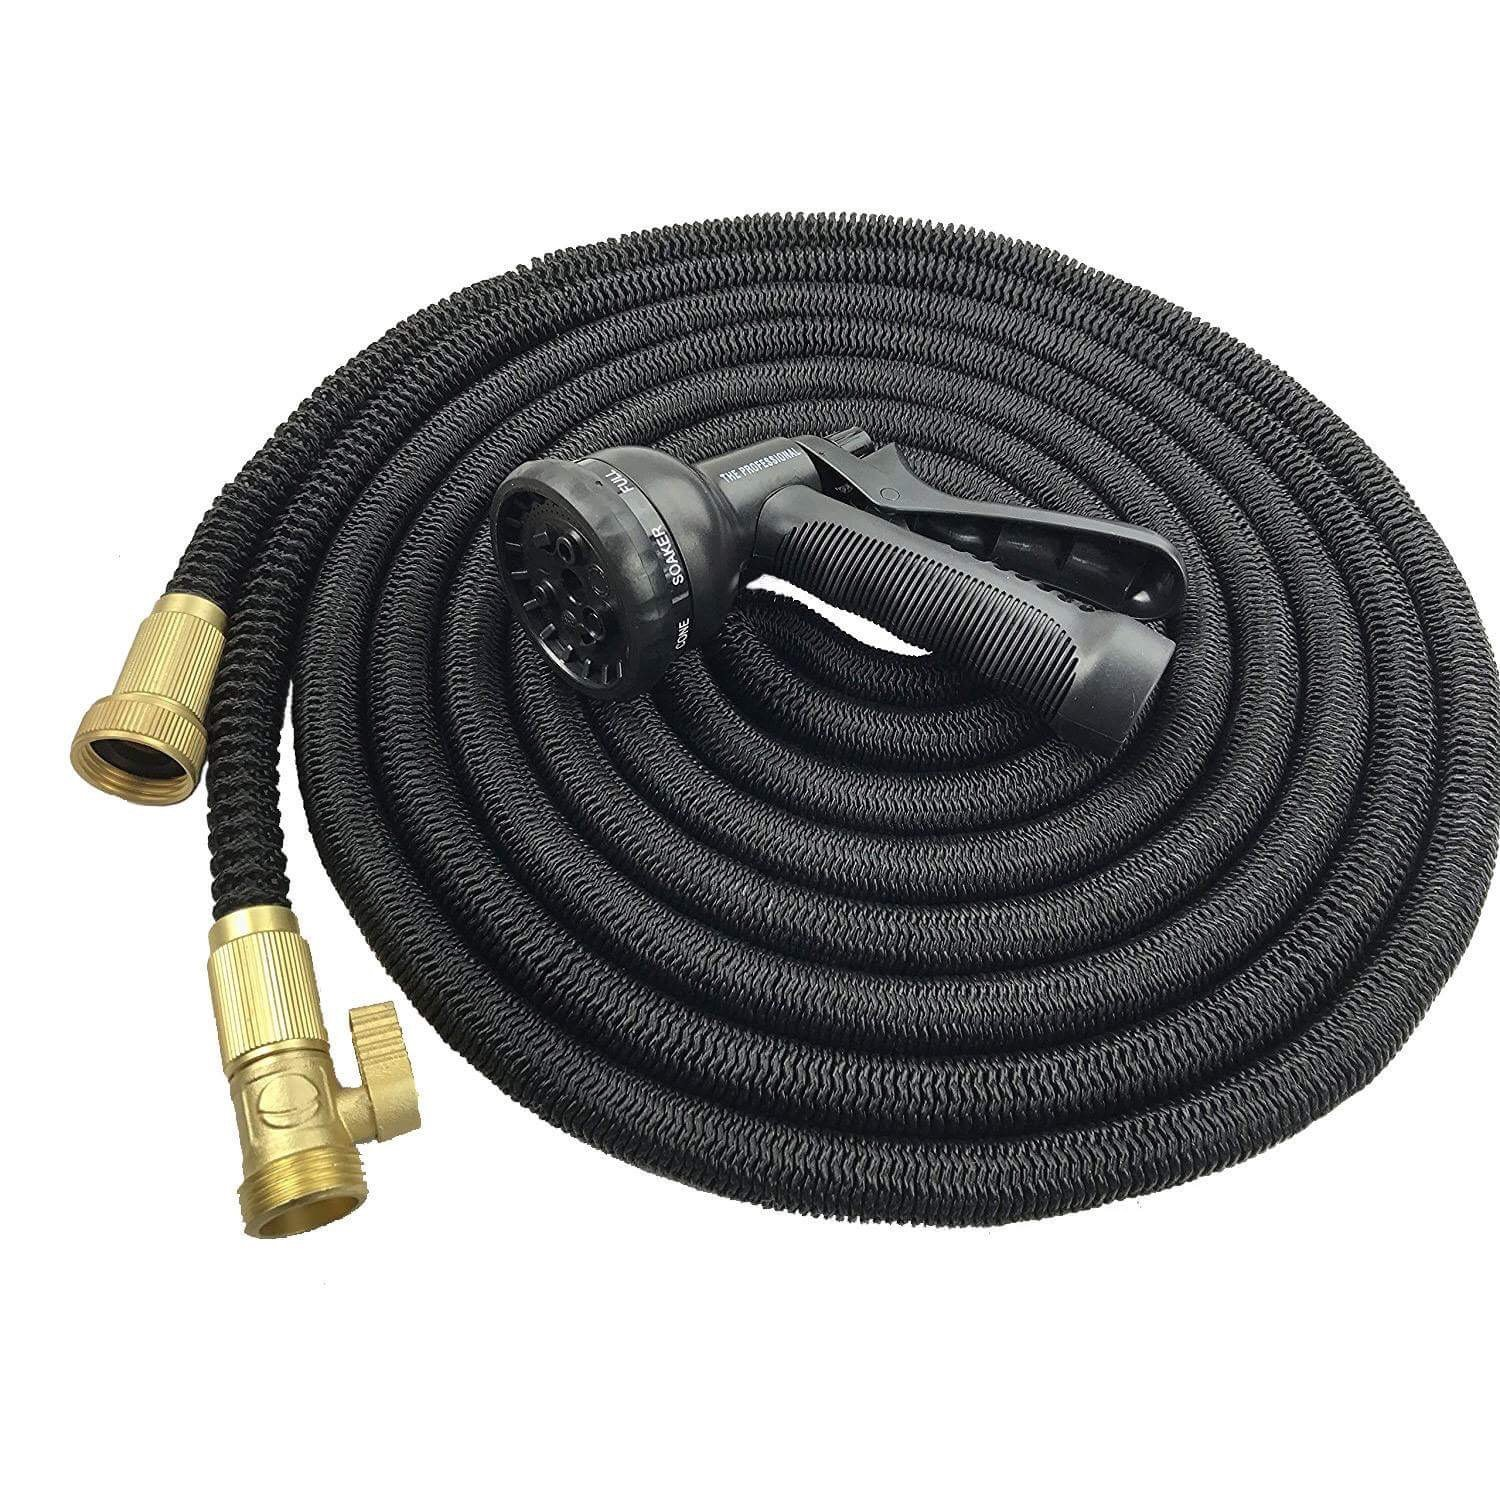 50' Expandable Garden Hose by McLaurus Lightweight, Retractable & Flexible, Super Durable Solid Brass Fittings, Free Spray Gun Nozzle, Latex Low Pressure Anti-Abrasion Inner Tube, Water Saver